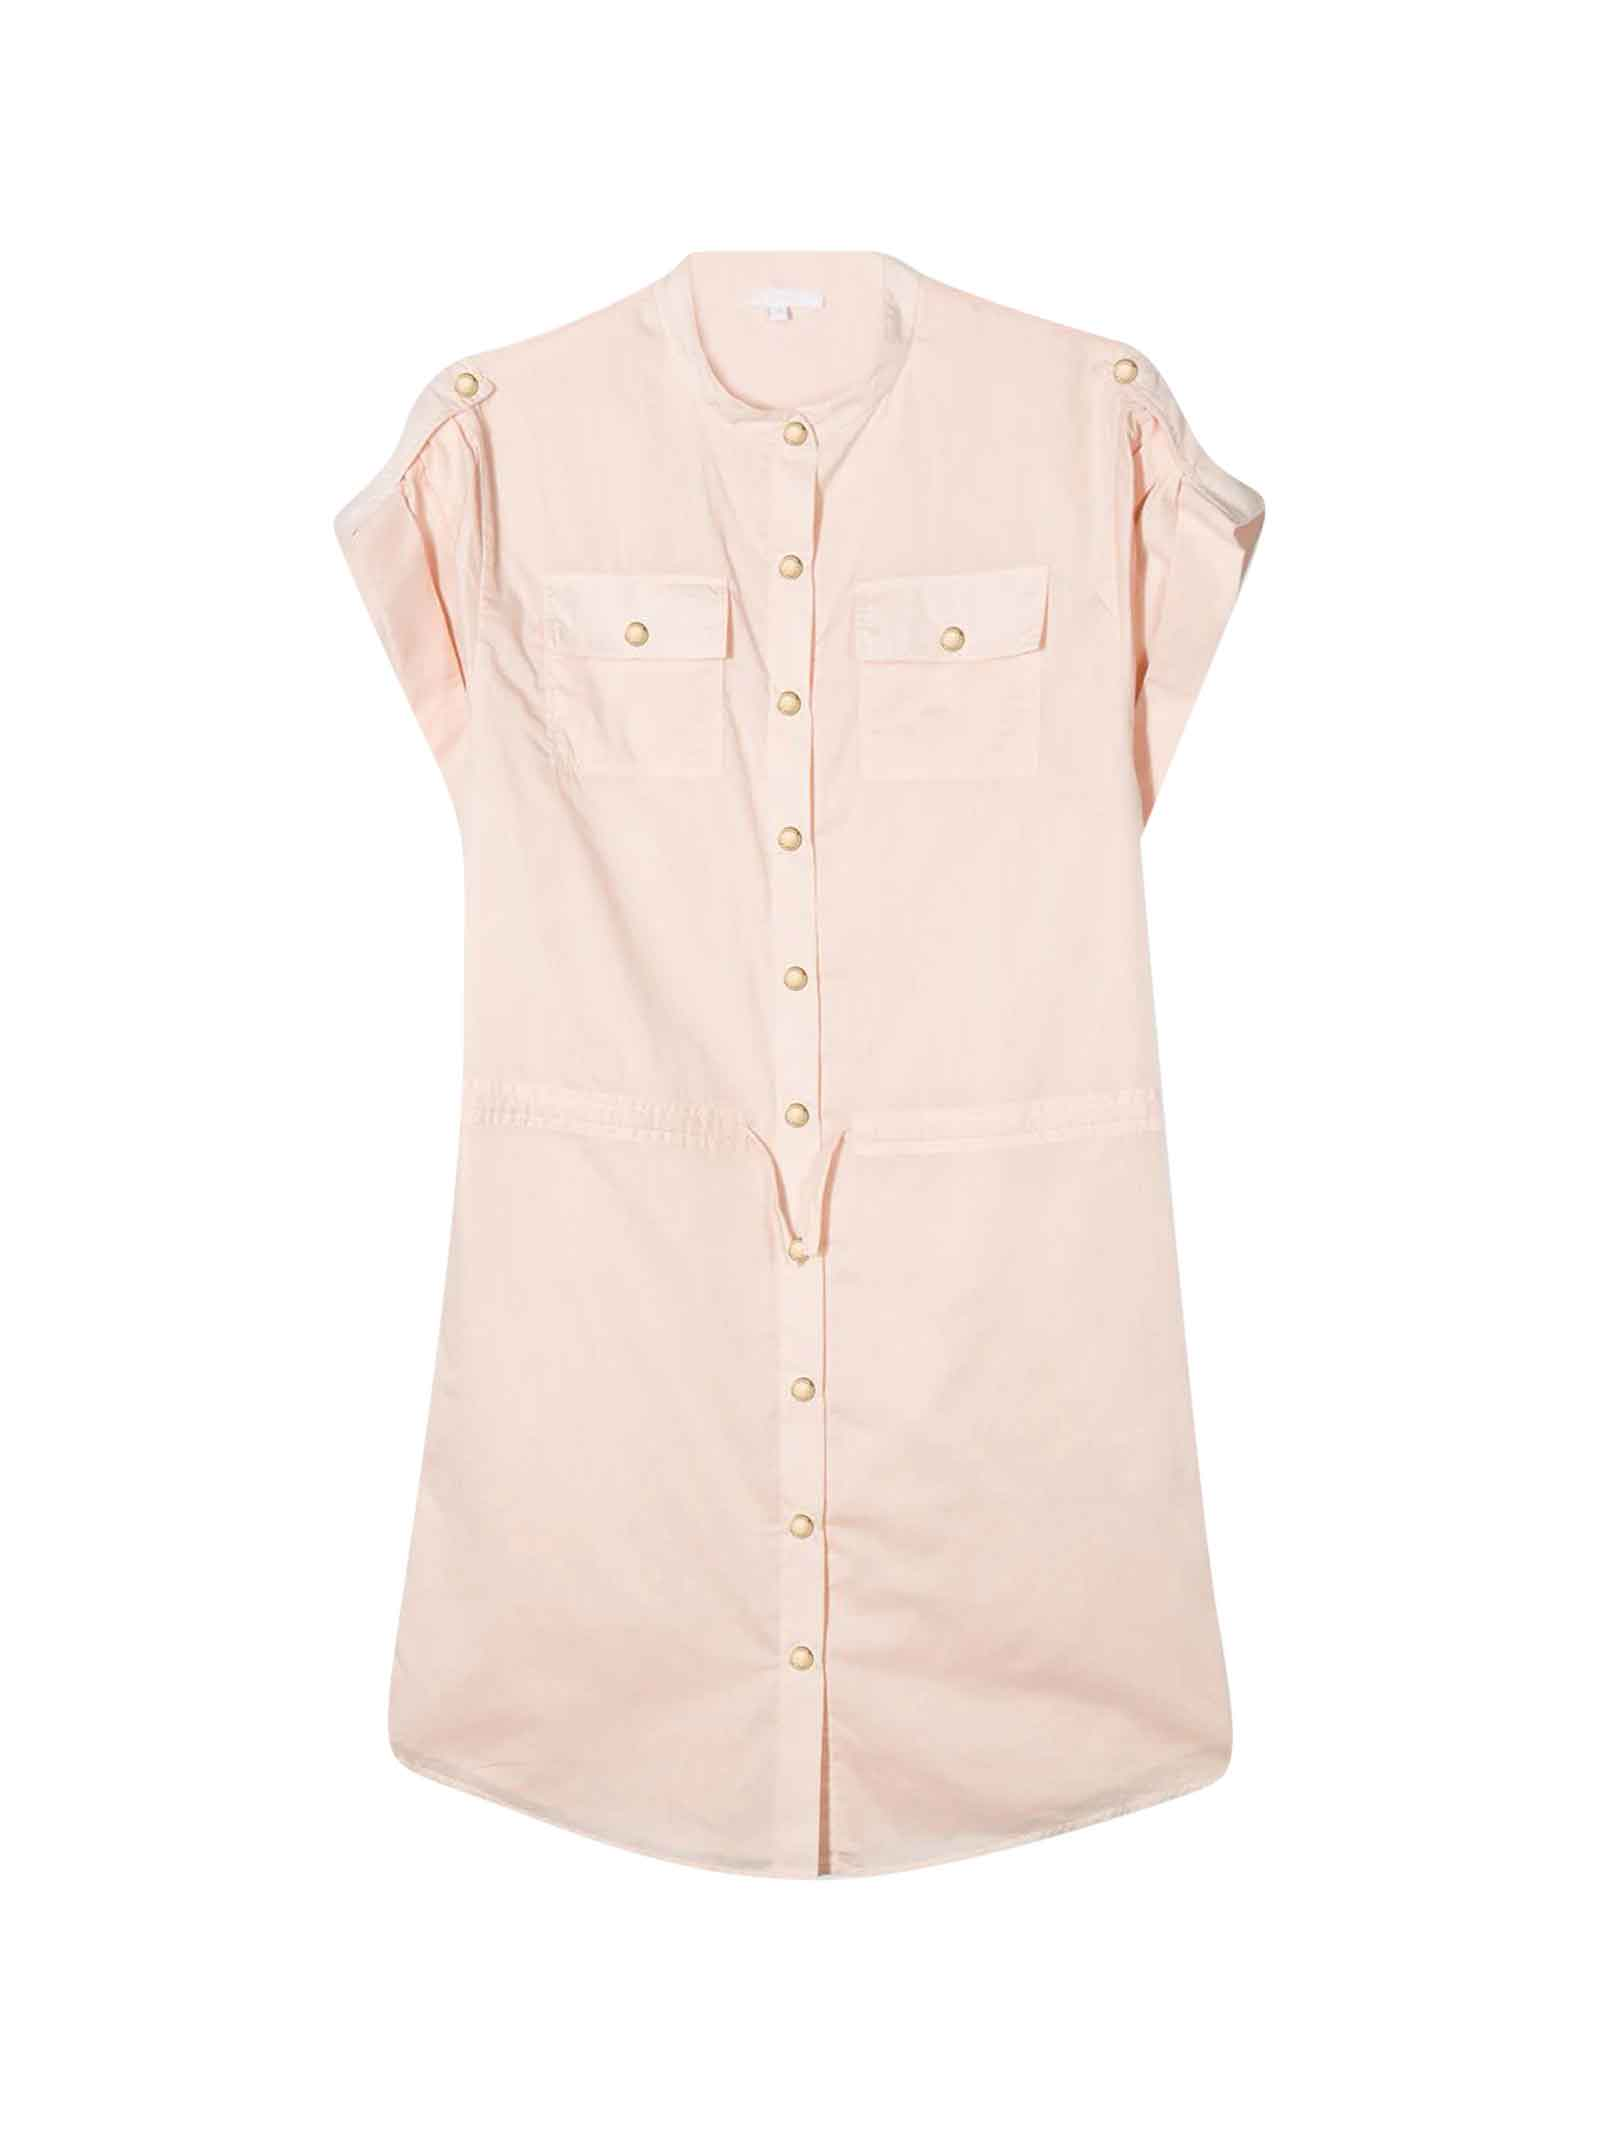 Buy Chloé Pink Dress With Frontal Buttons Chloé Kids online, shop Chloé with free shipping